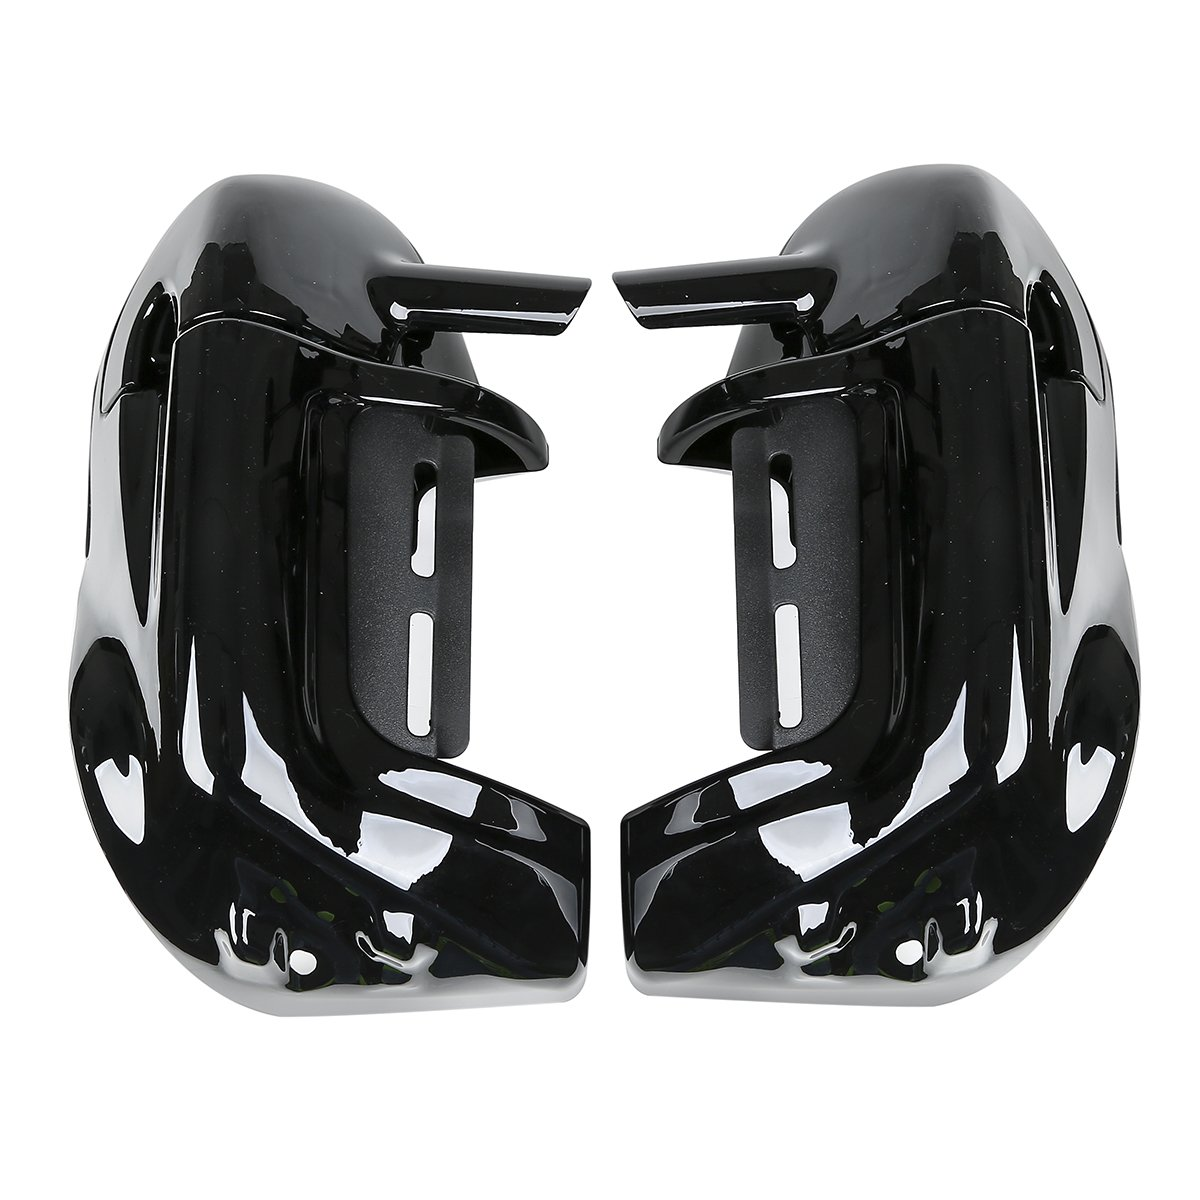 XMT-MOTO Lower Vented Leg Fairing + 6.5'' Speakers w/Grills For Harley Touring 1983-2013